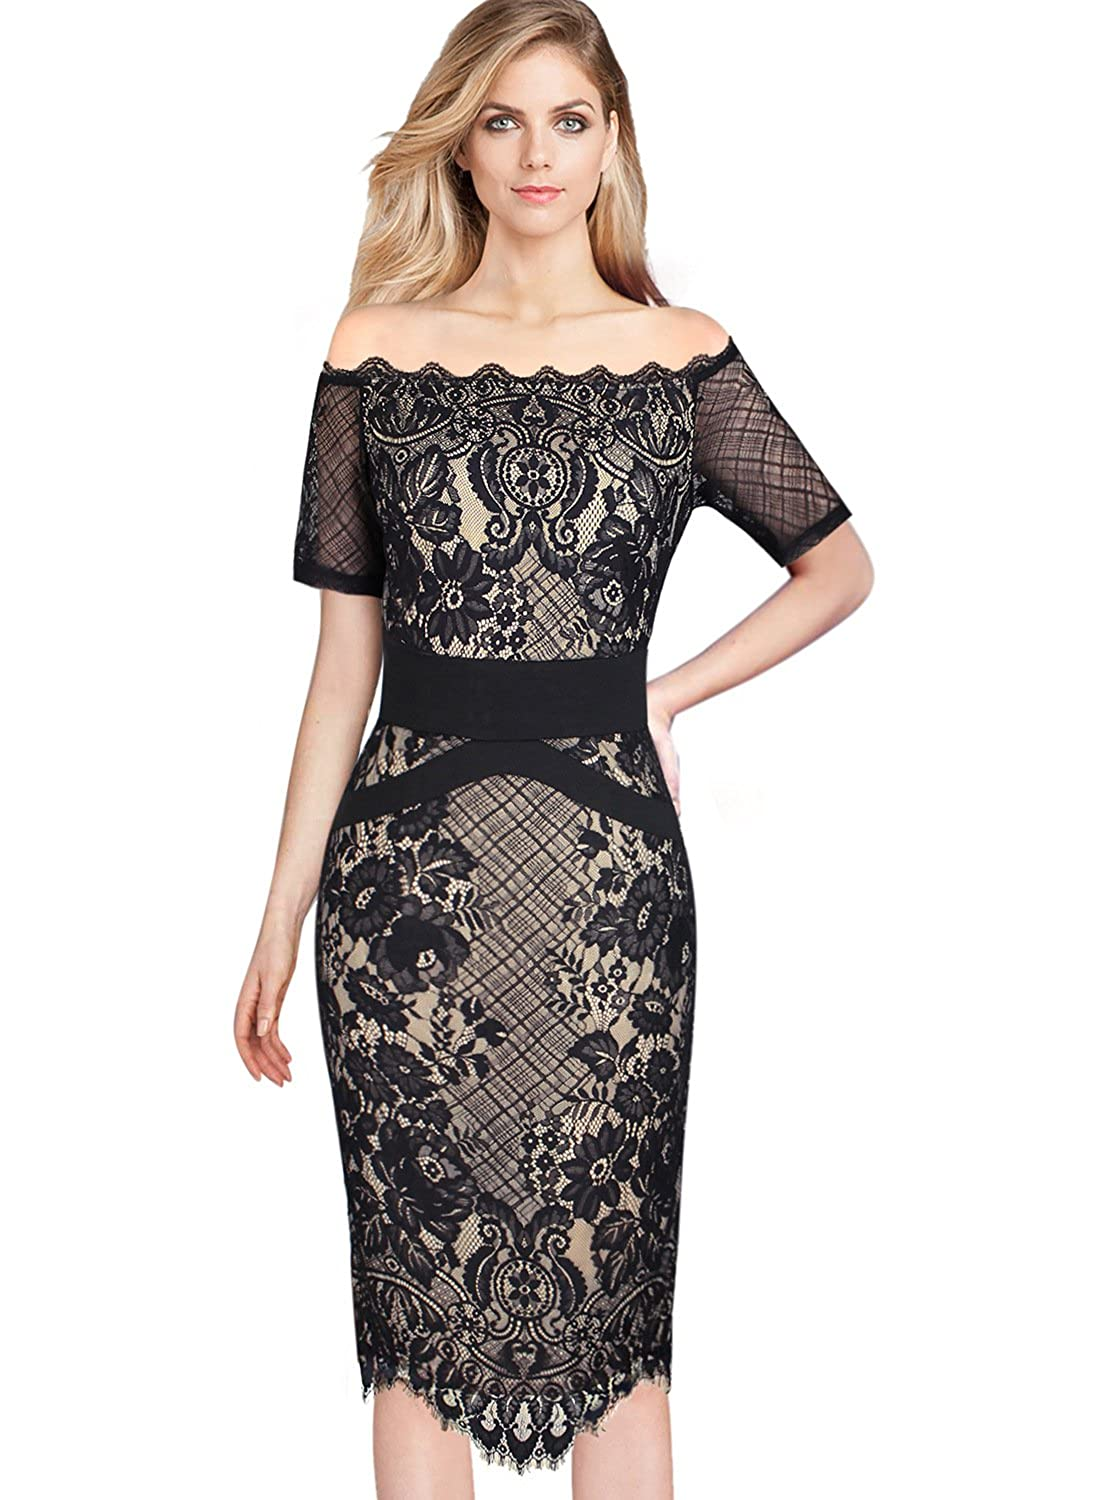 107fe25286 VFSHOW Womens Sexy Off Shoulder Floral Lace Cocktail Party Sheath Dress